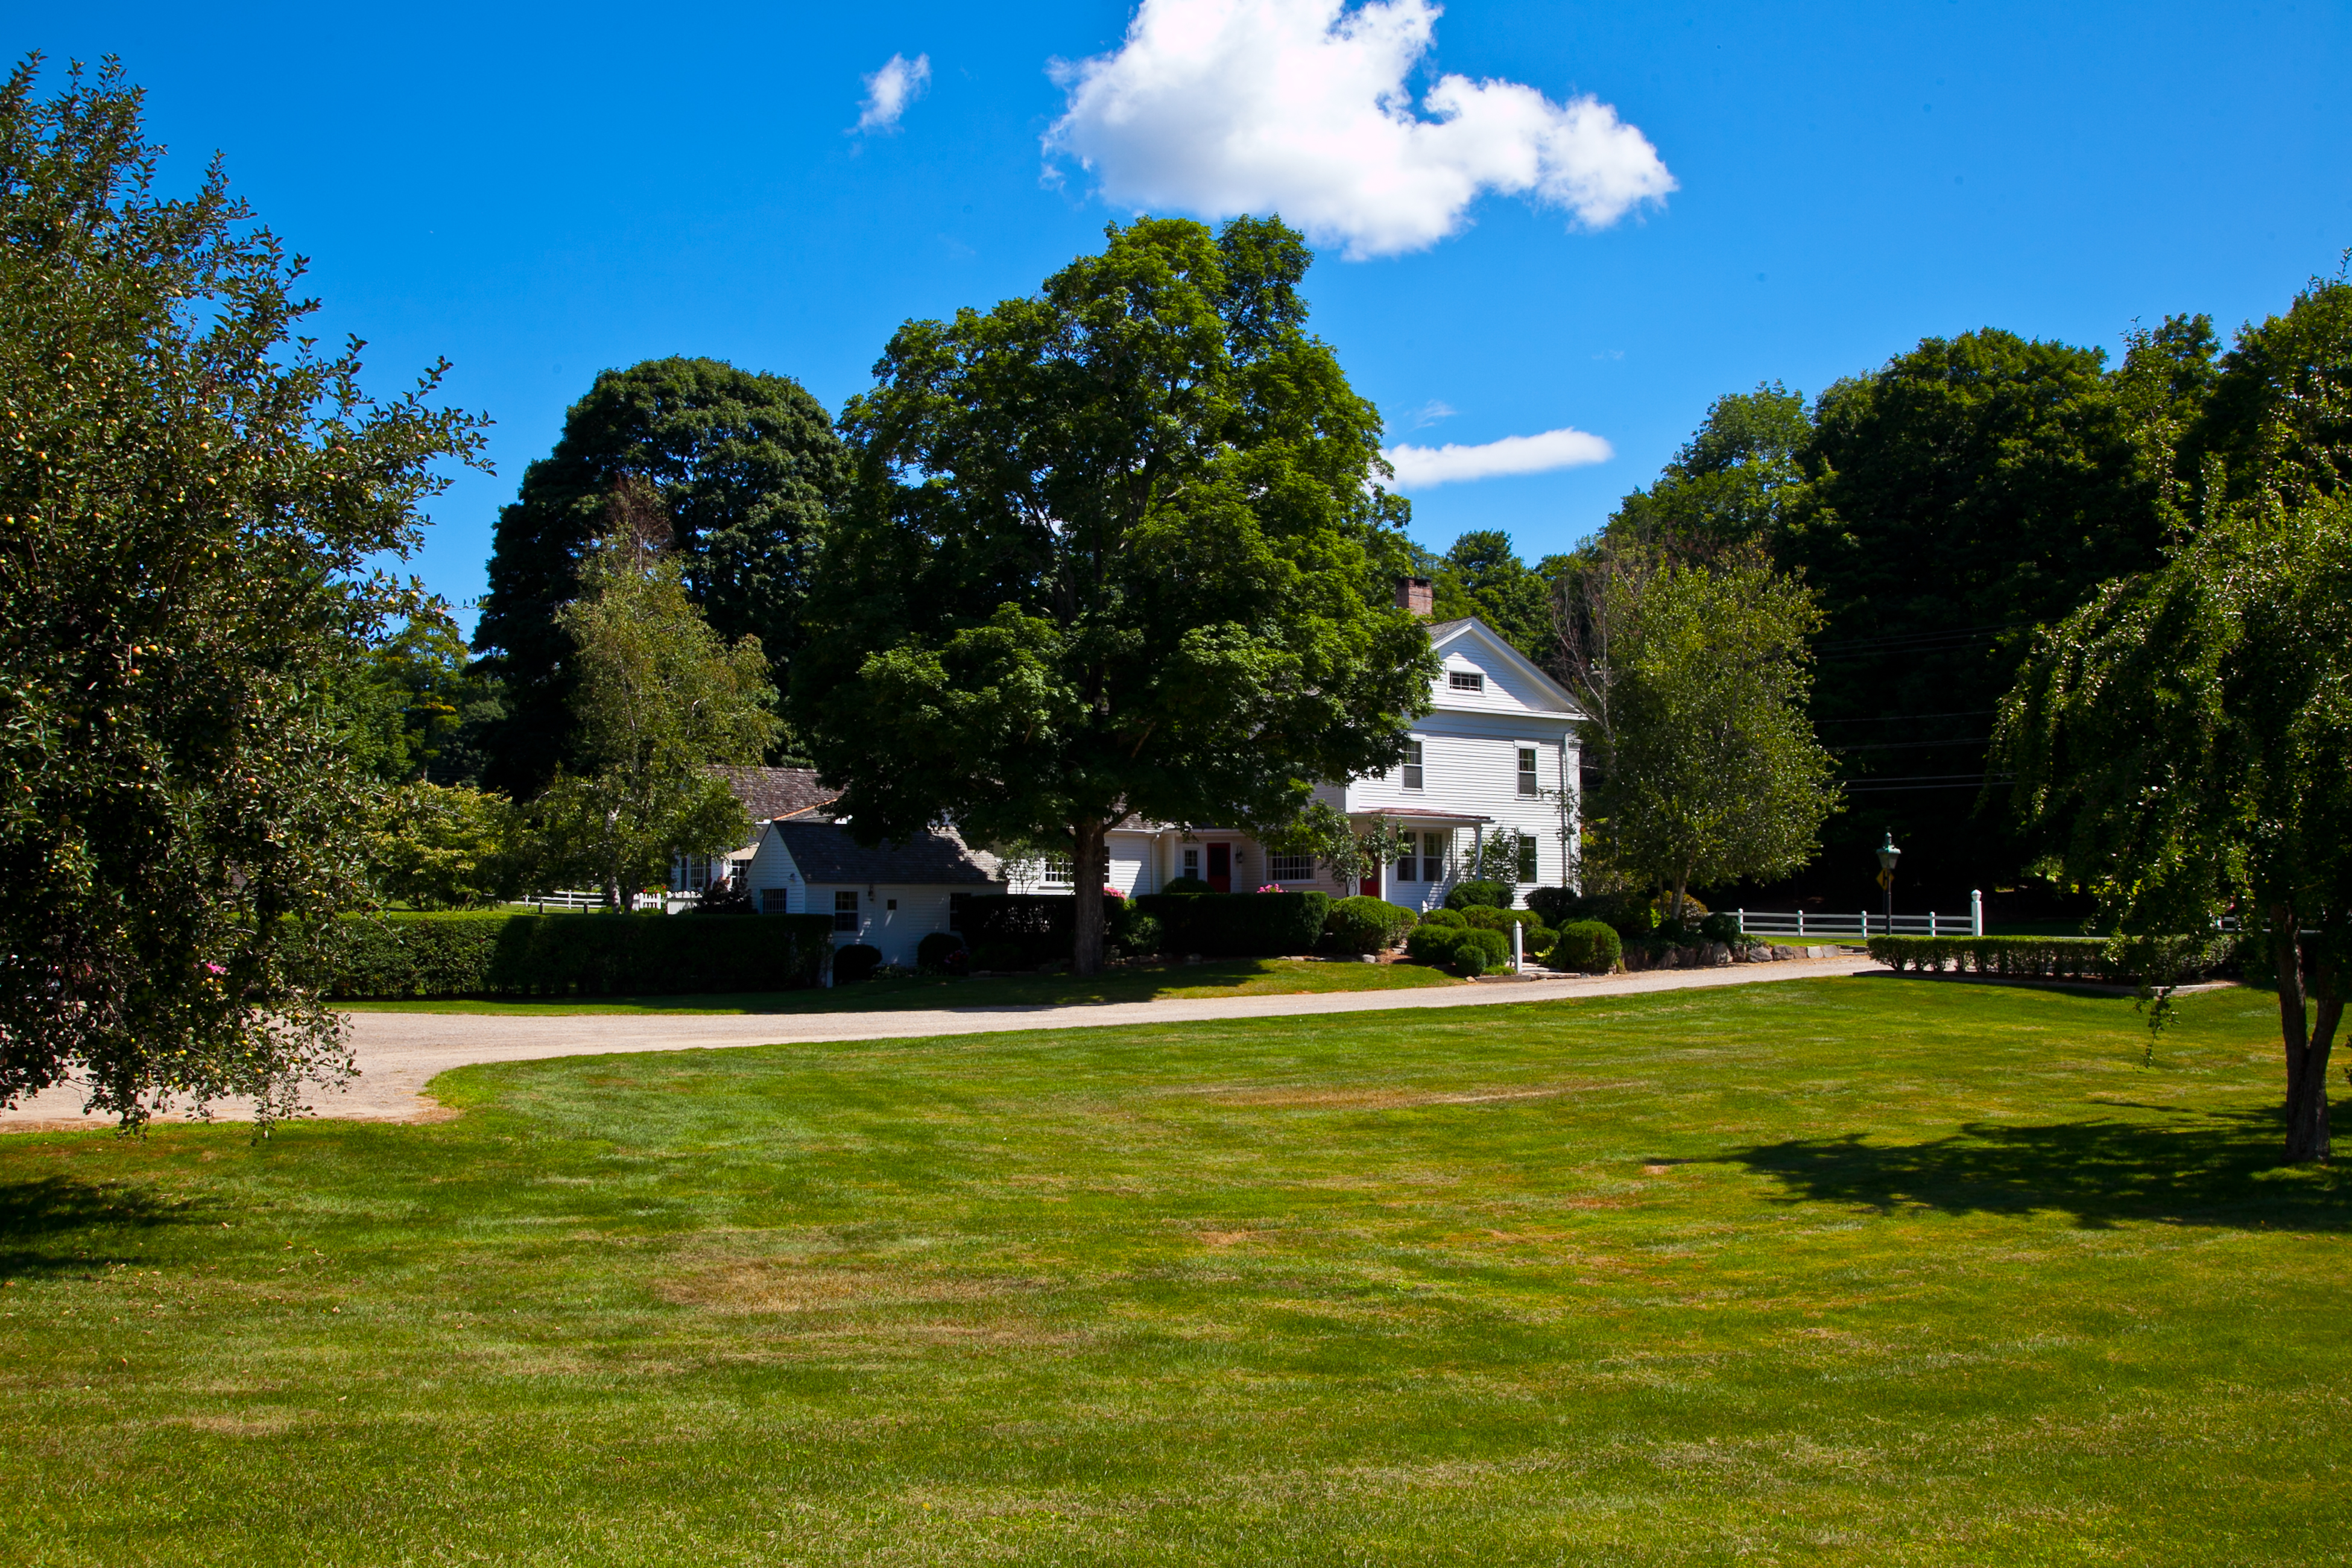 Single Family Home for Sale at Magical Woodbury Estate 920 Main St South Woodbury, Connecticut 06798 United States